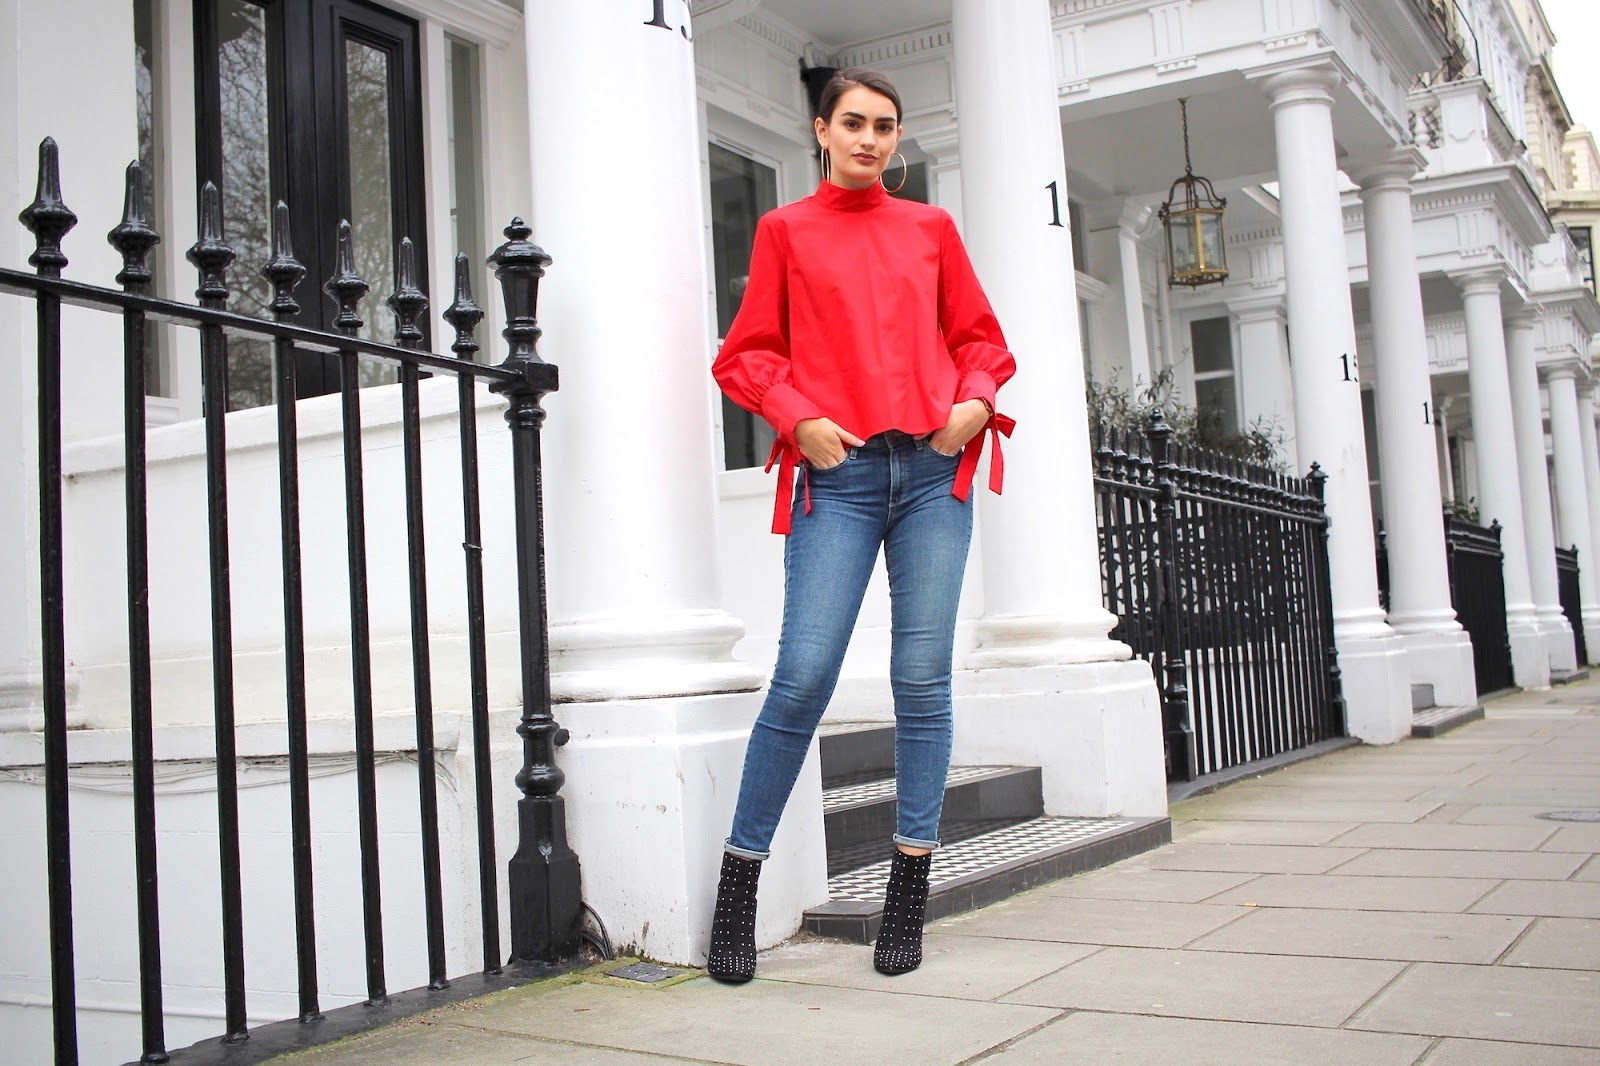 peexo personal style blogger topshop red top